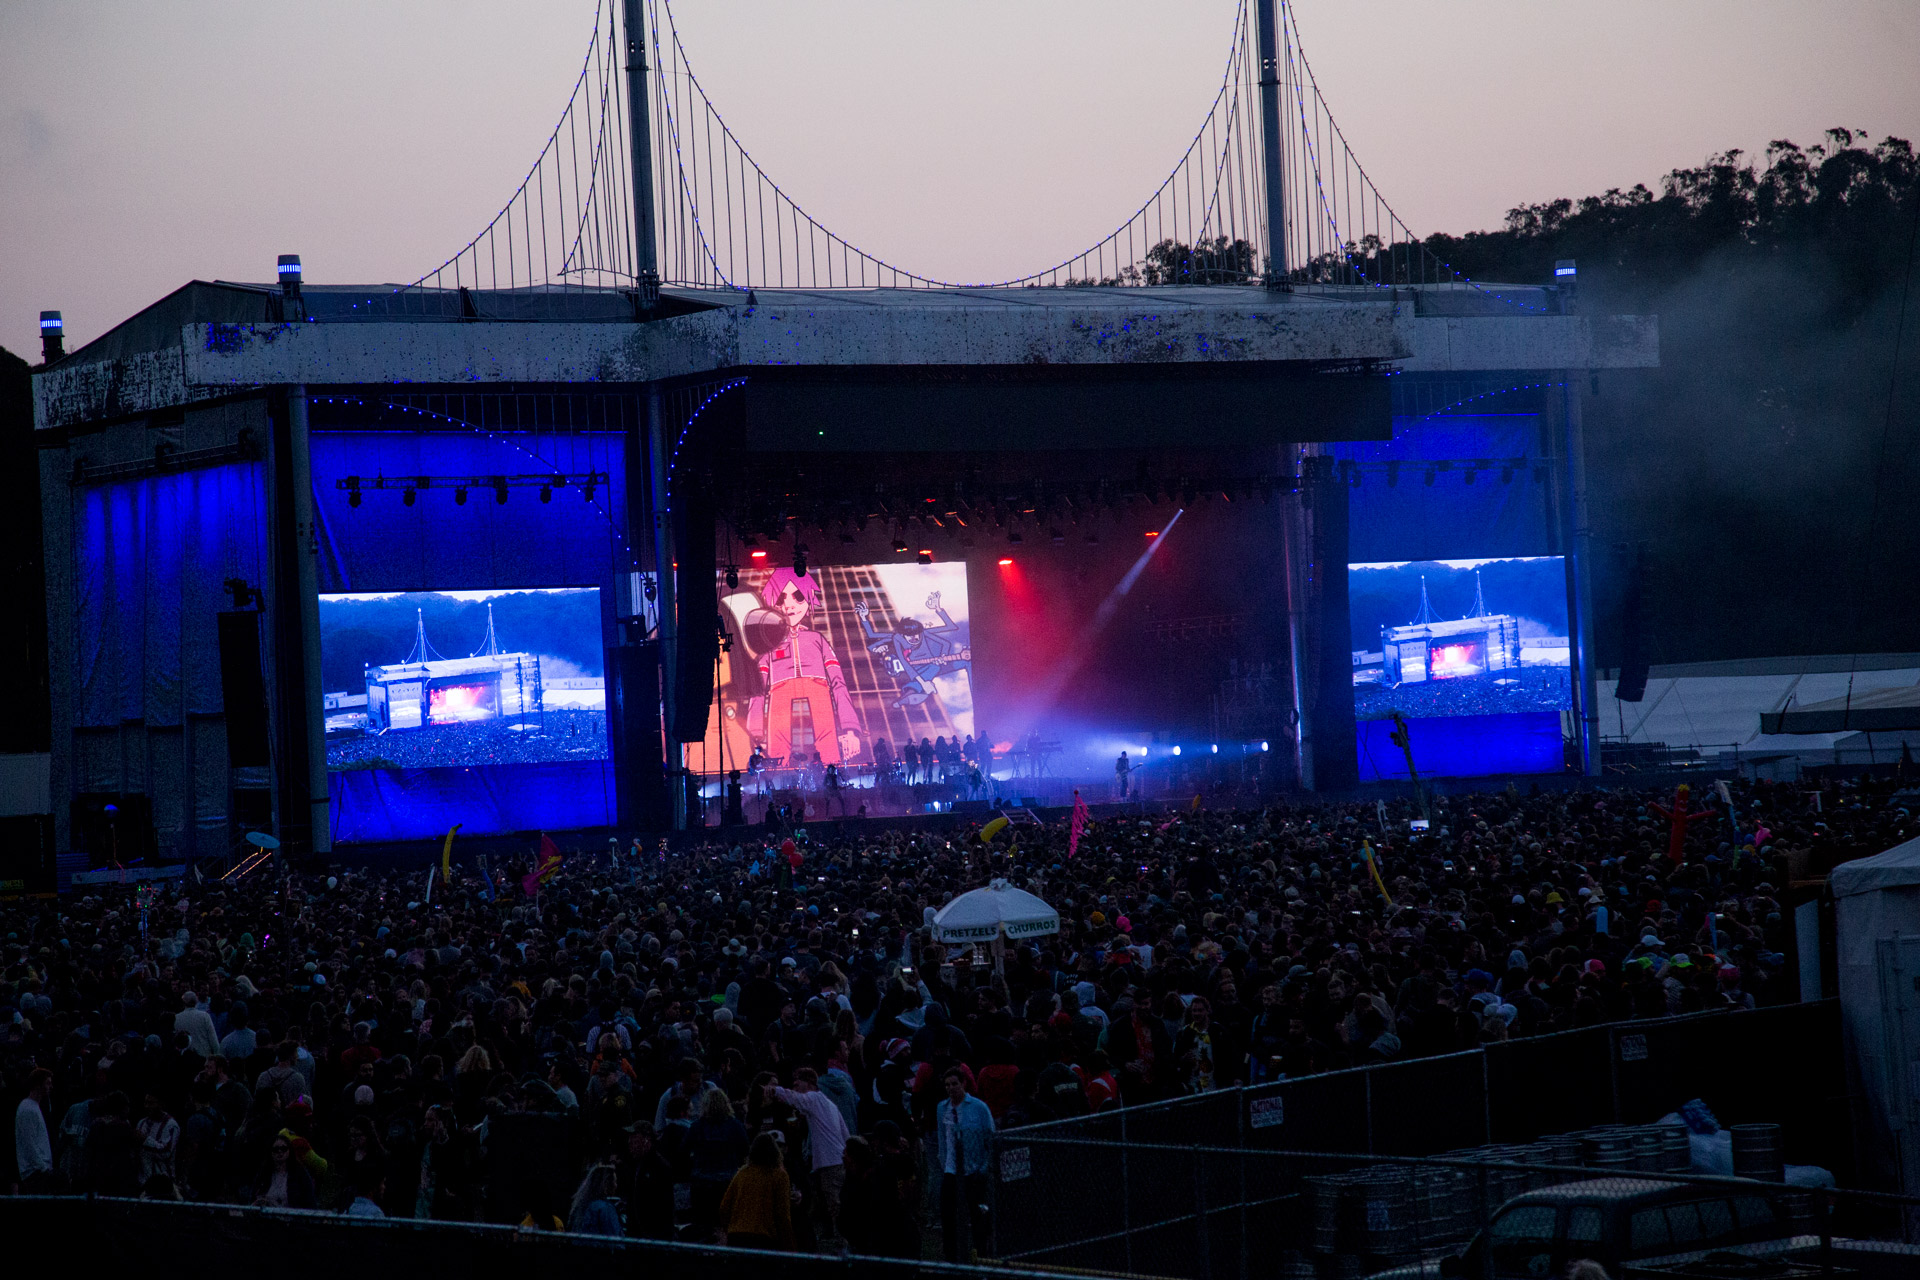 The crowd watch Gorillaz at the Outside Lands music festival in San Francisco, Aug. 11, 2017.